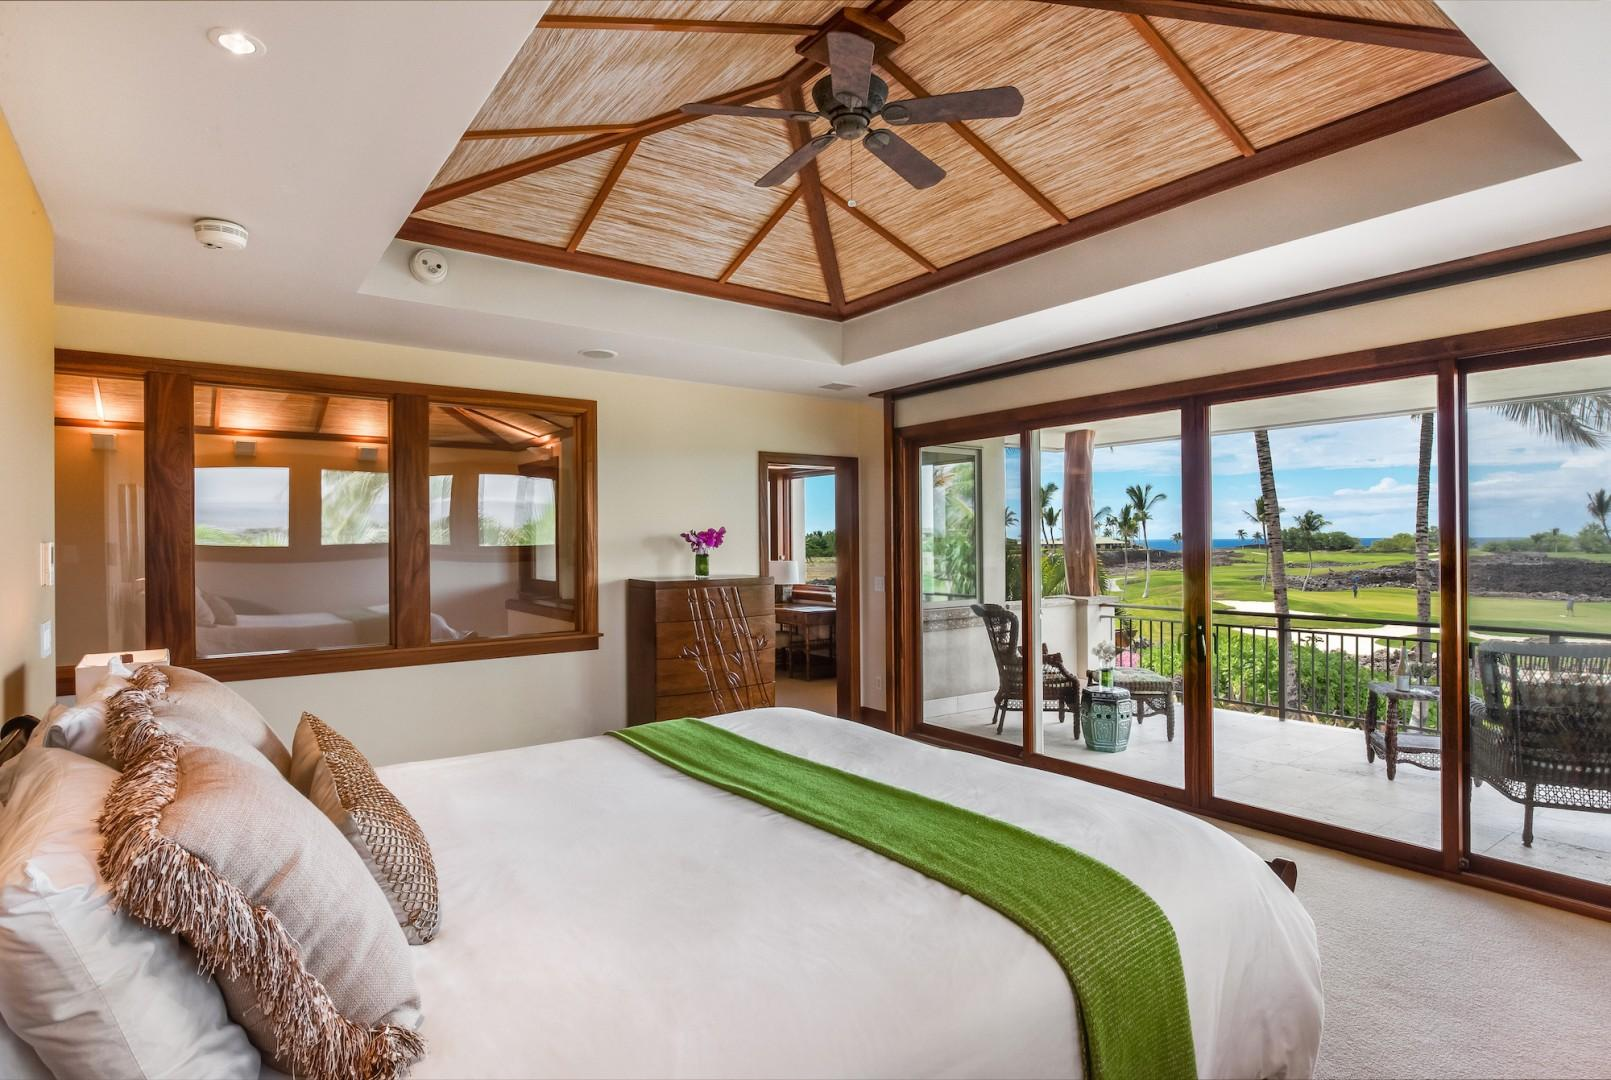 Upstairs Master Commands the Entire Second Floor w/ Separate Office Space w/ Twin Daybed, Electronic Pocket Doors Open to Private Lanai Overlooking Pool Garden, Golf Course and Out to Ocean